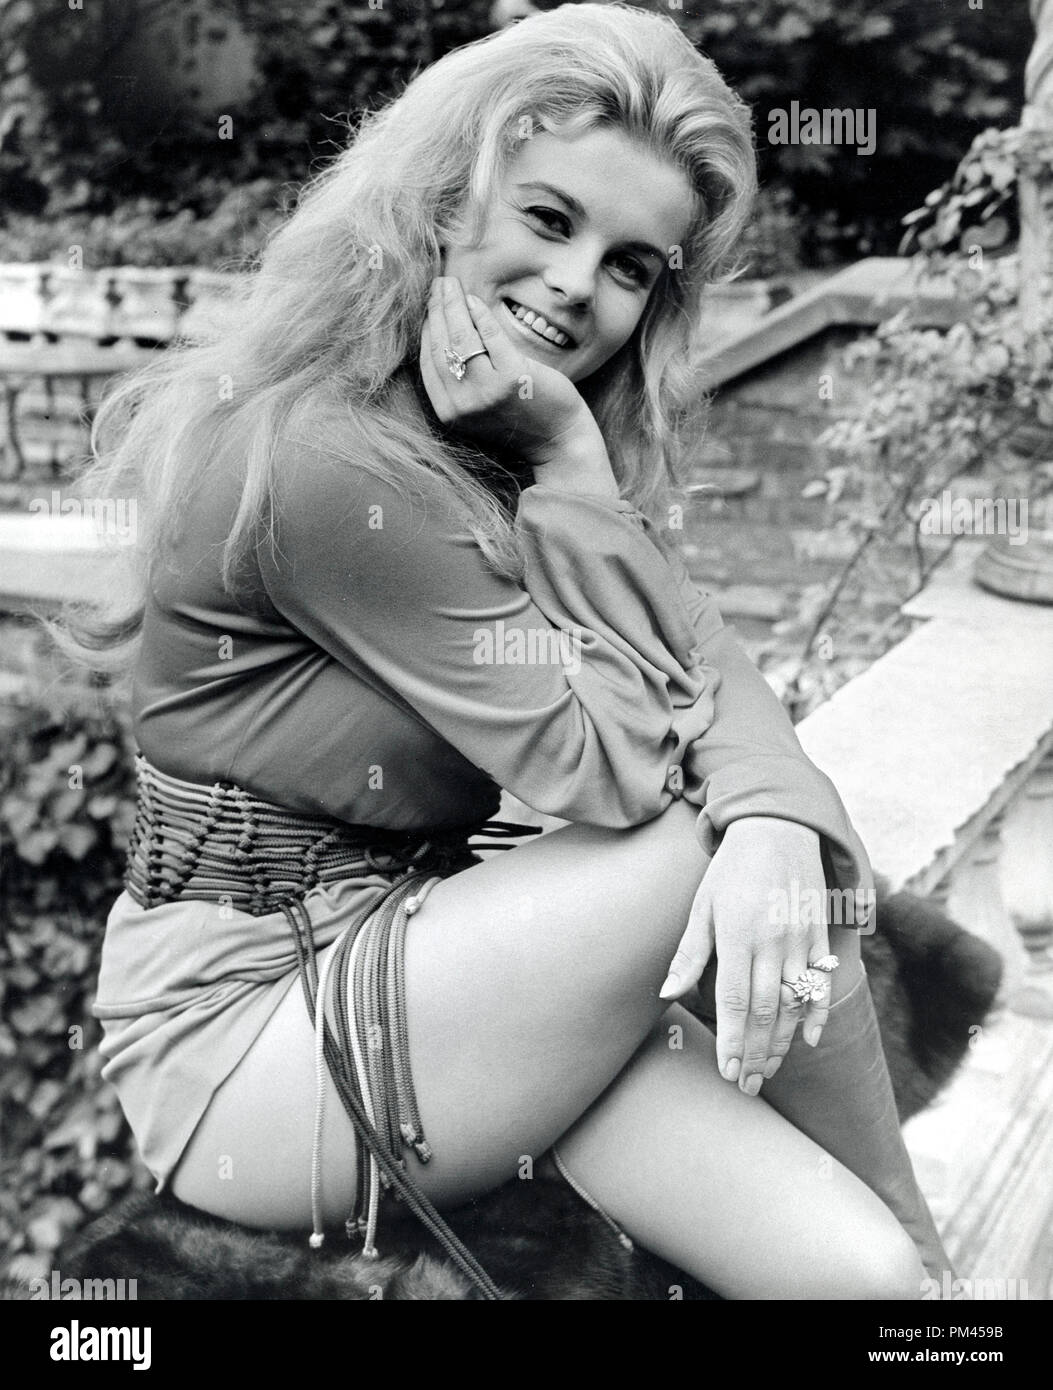 Ann-Margret, August1971. File Reference #1033_009THA © JRC /The Hollywood Archive - All Rights Reserved. - Stock Image